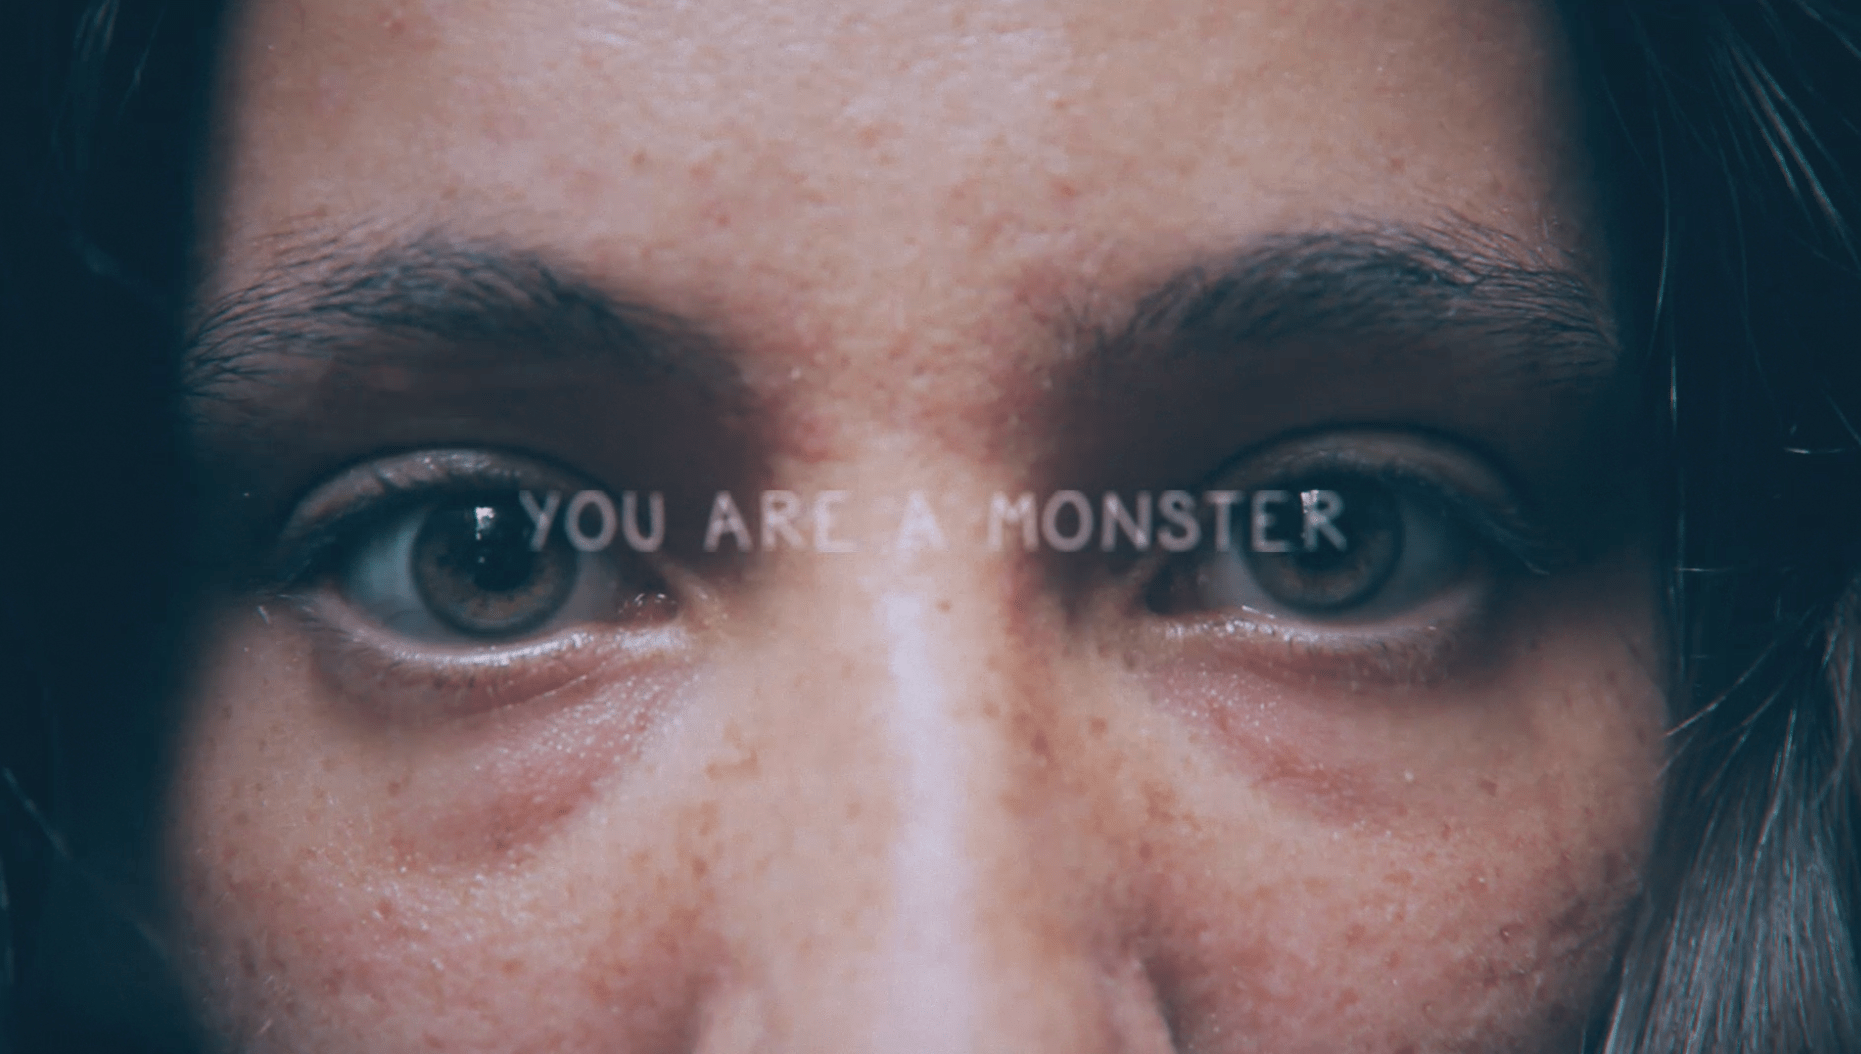 YOU ARE A MONSTER